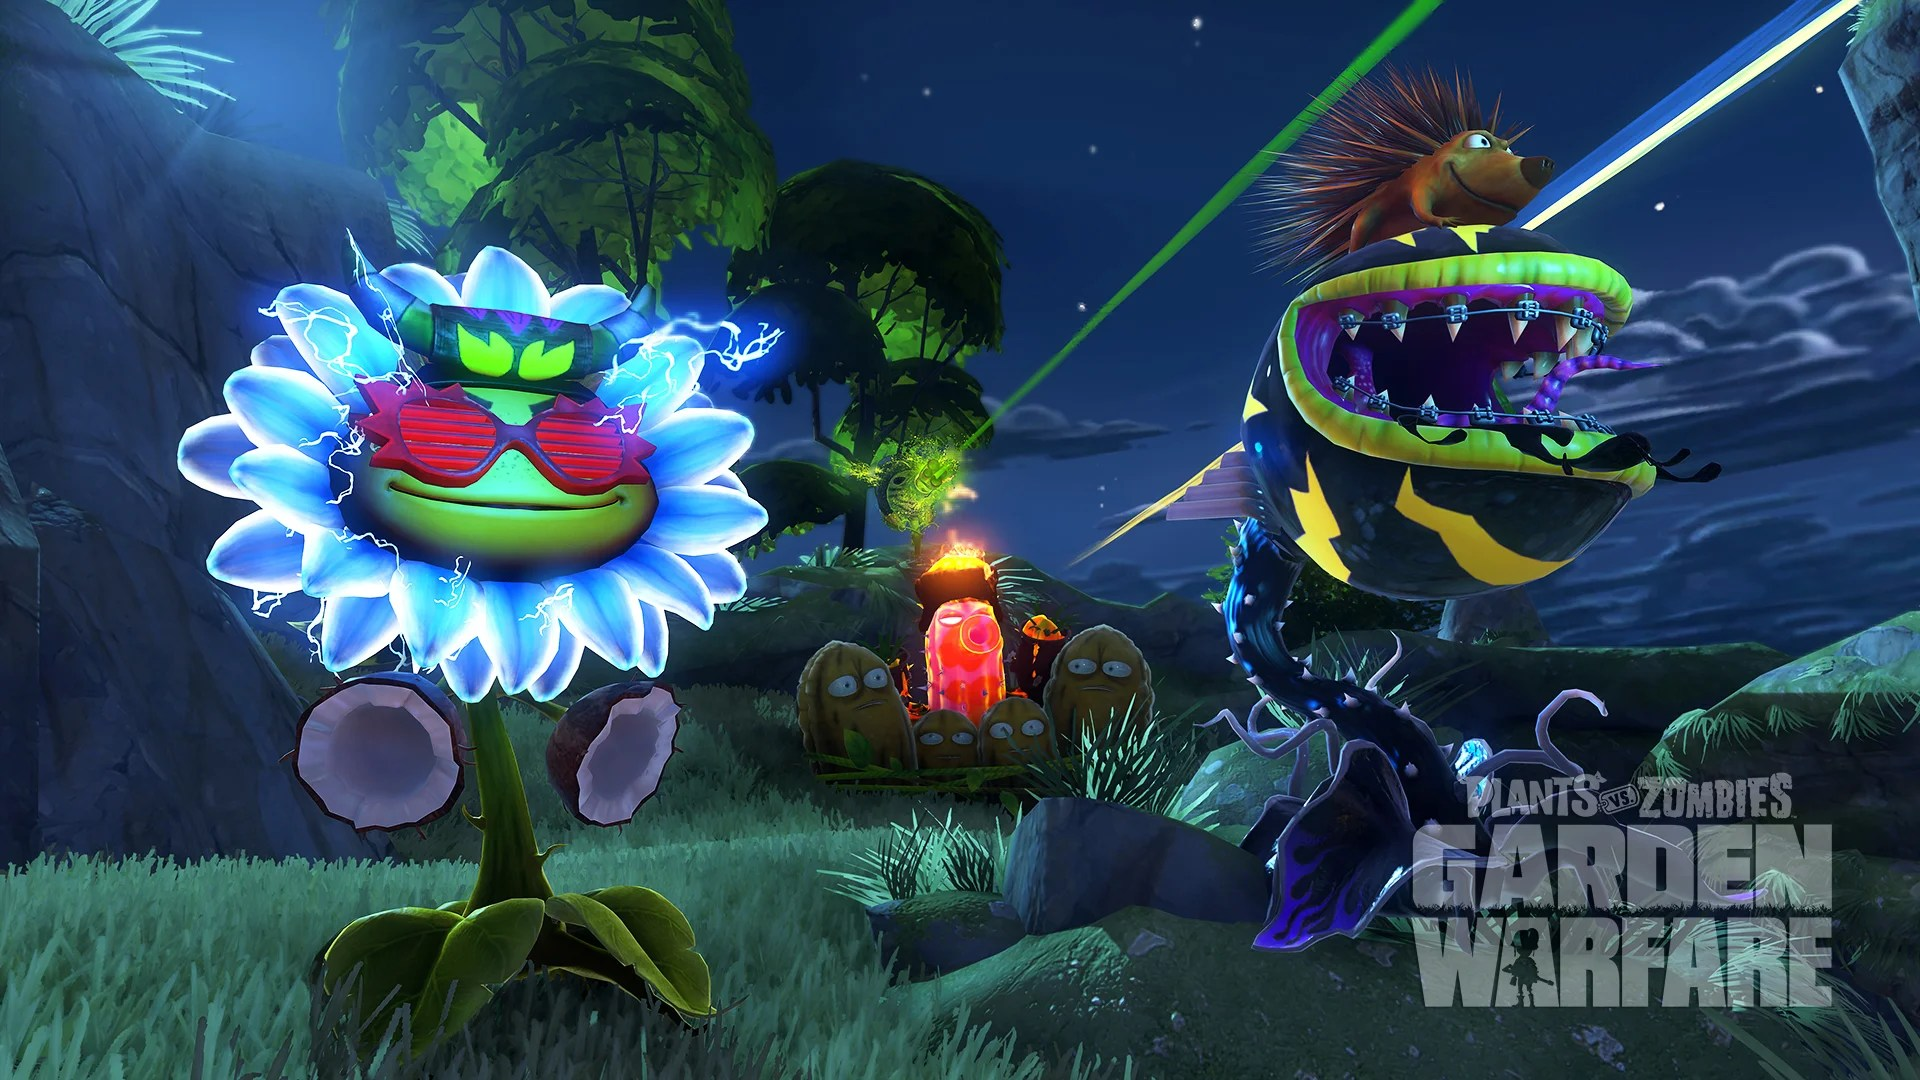 hight resolution of plants vs zombies garden warfare the kotaku review